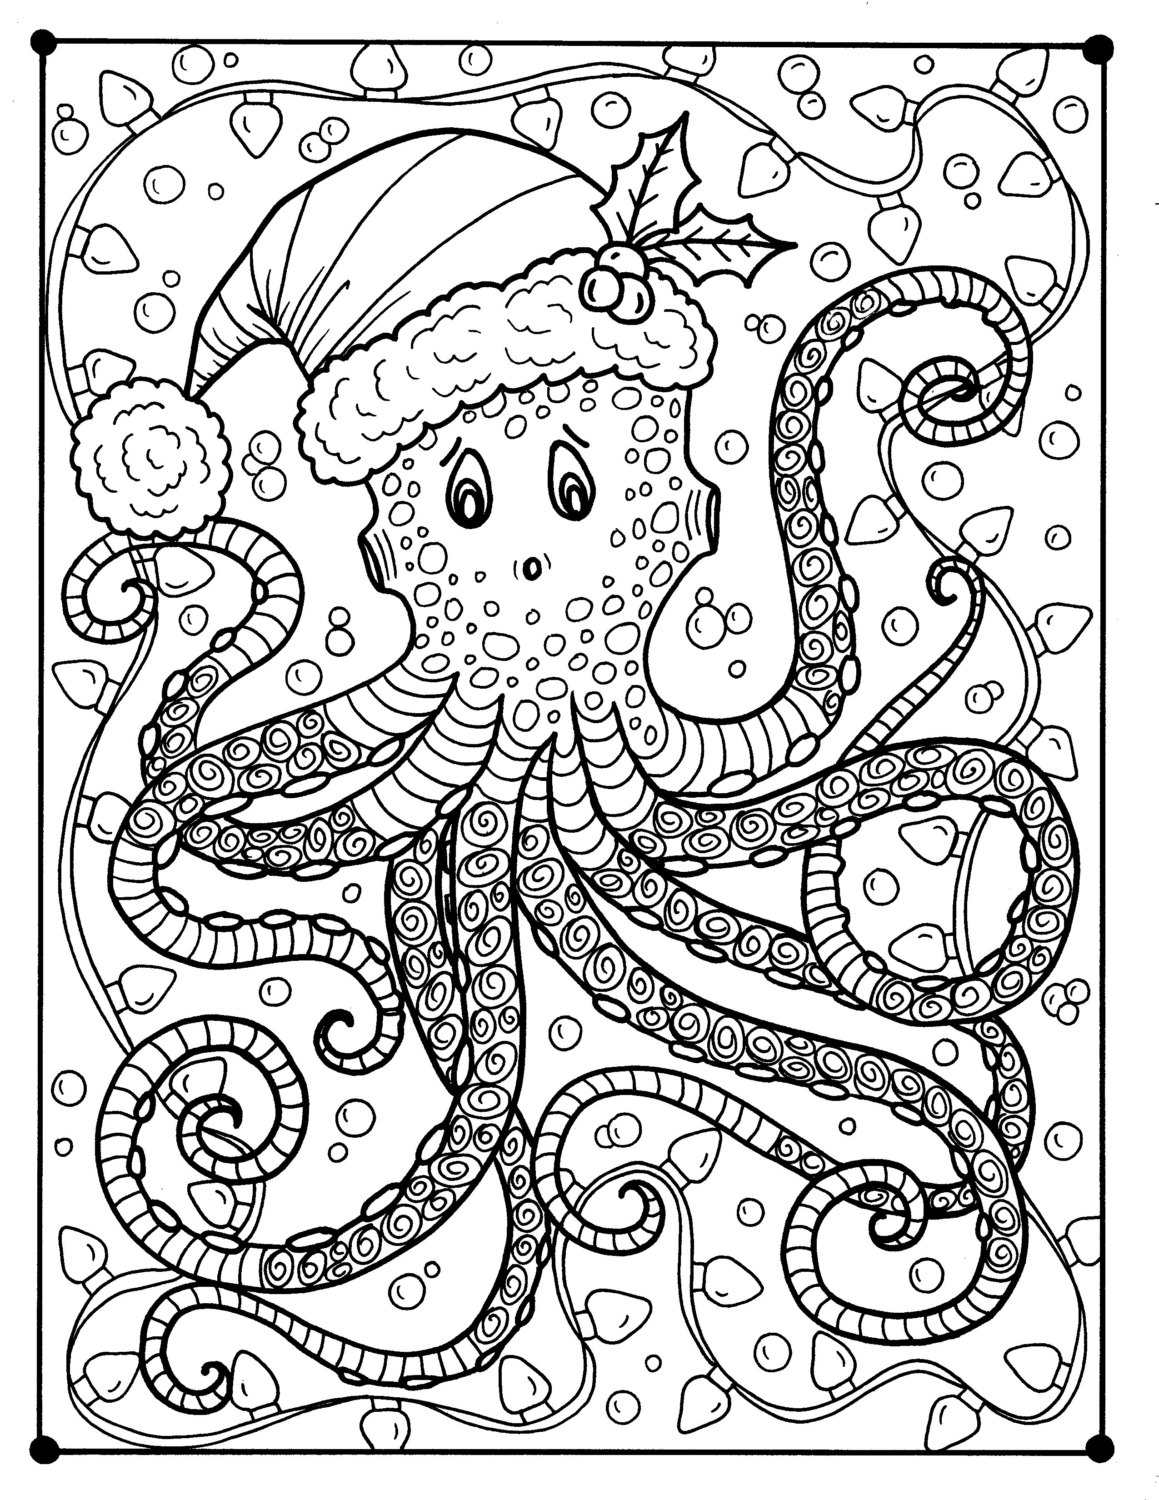 Christmas Coloring Pages That You Can Color With Octopus Page Adult Holidays Beach Etsy